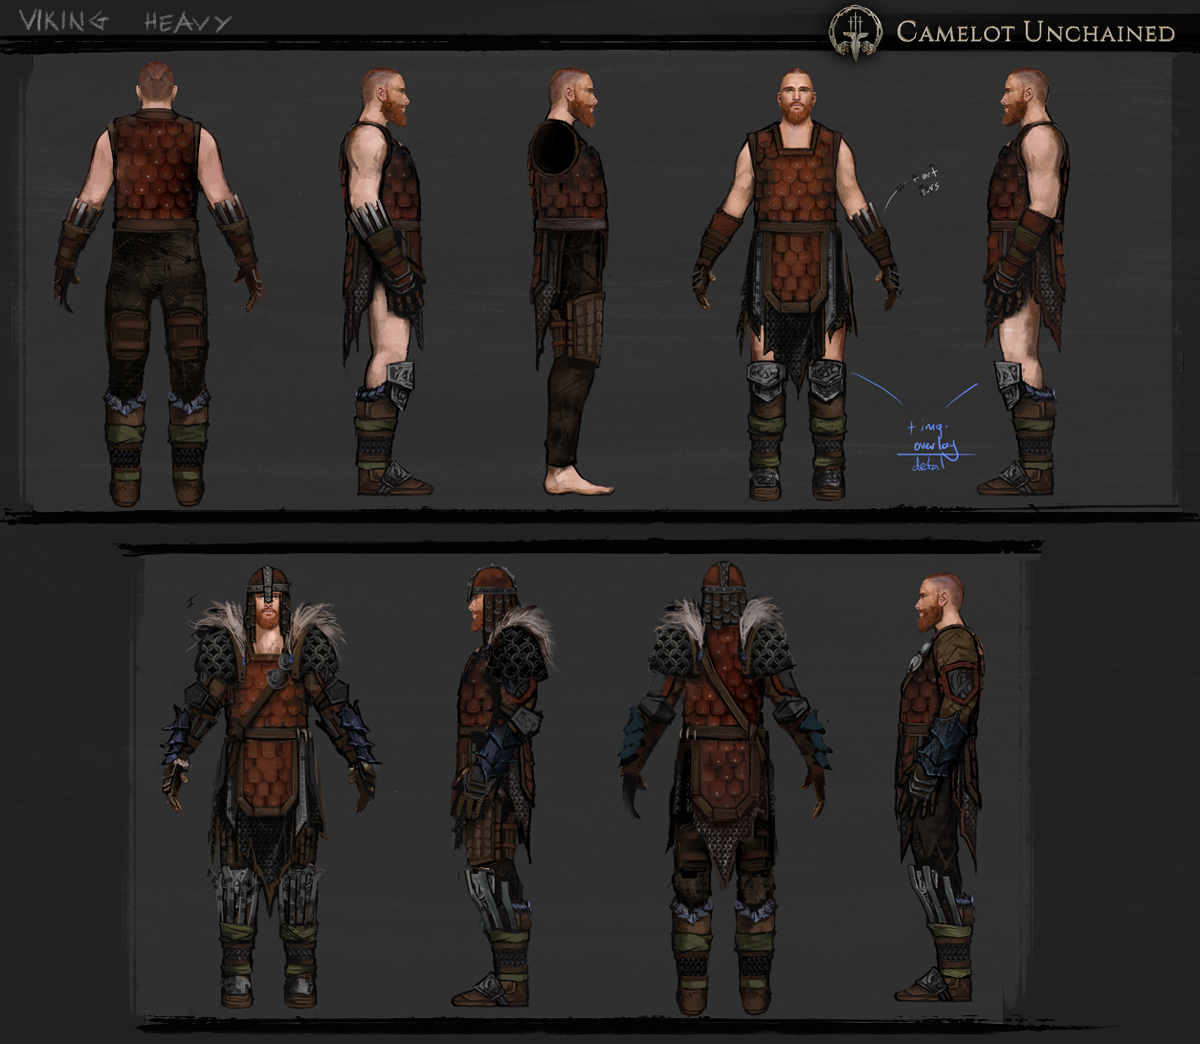 armor_vik_heavy_update_1200